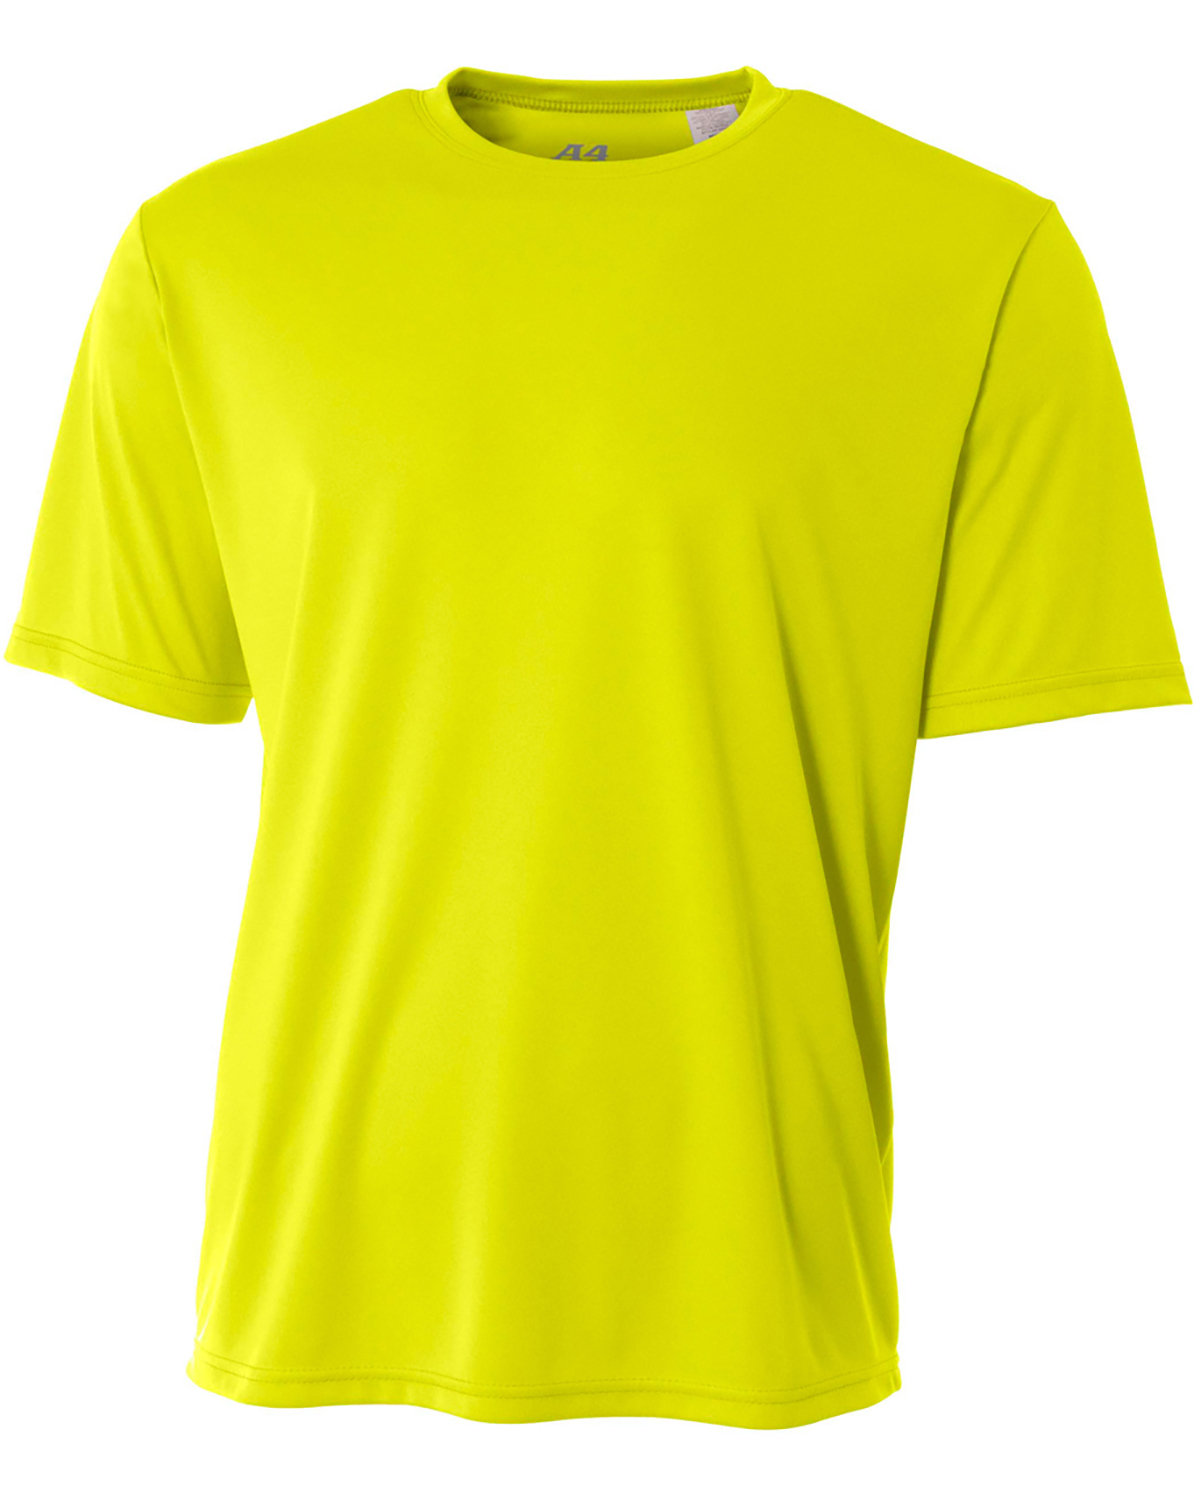 A4 Youth Cooling Performance T-Shirt SAFETY YELLOW